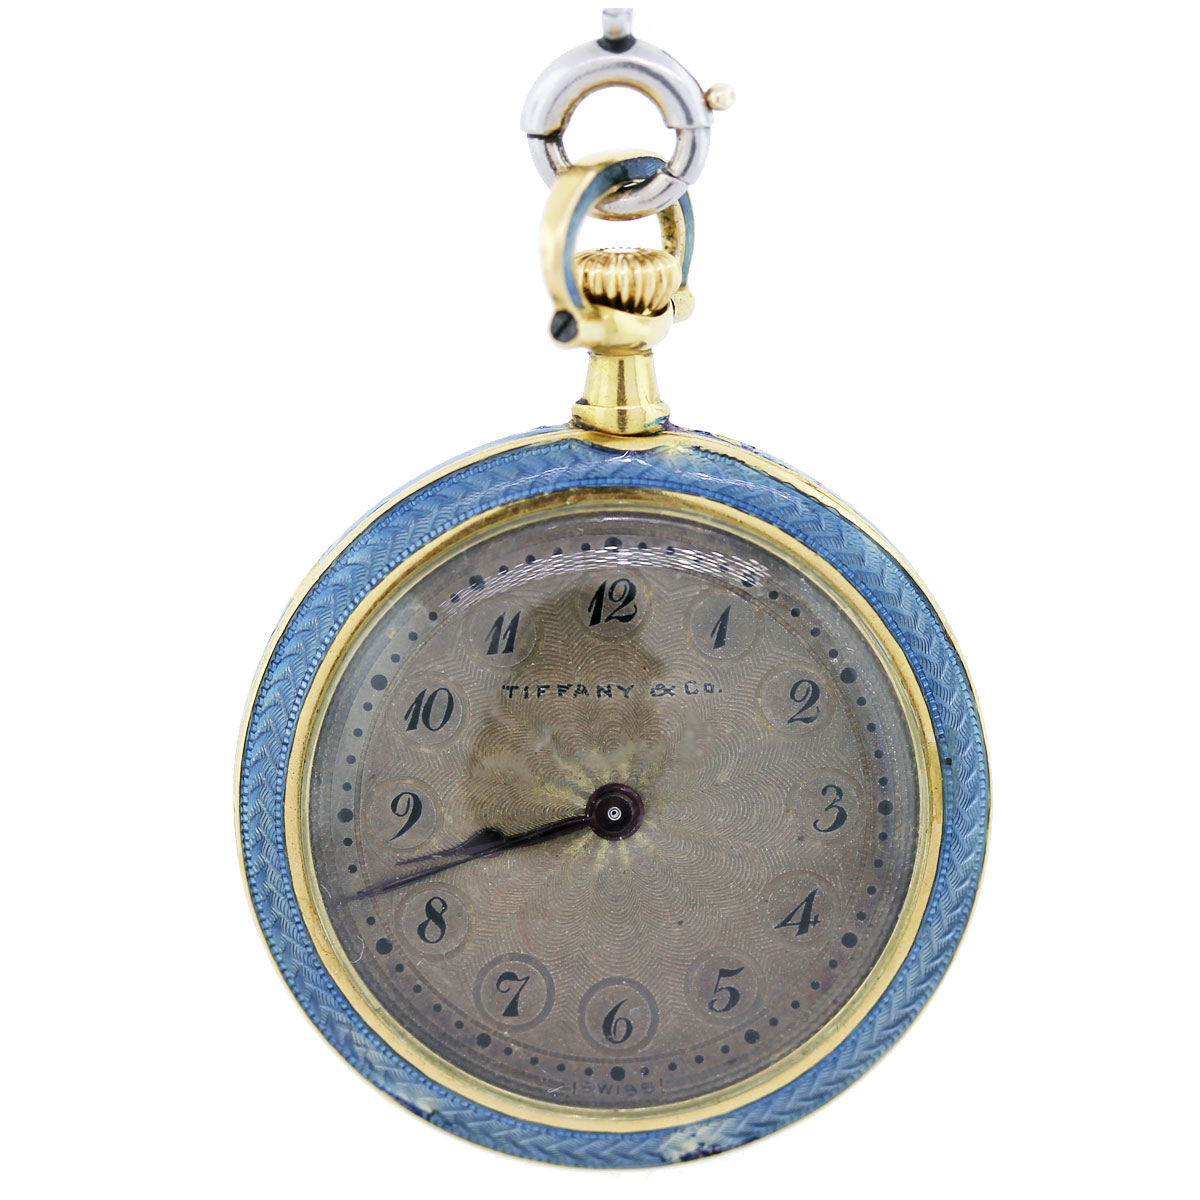 Tiffany & Co. Yellow and White Gold and Enamel Vintage Pocket Watch